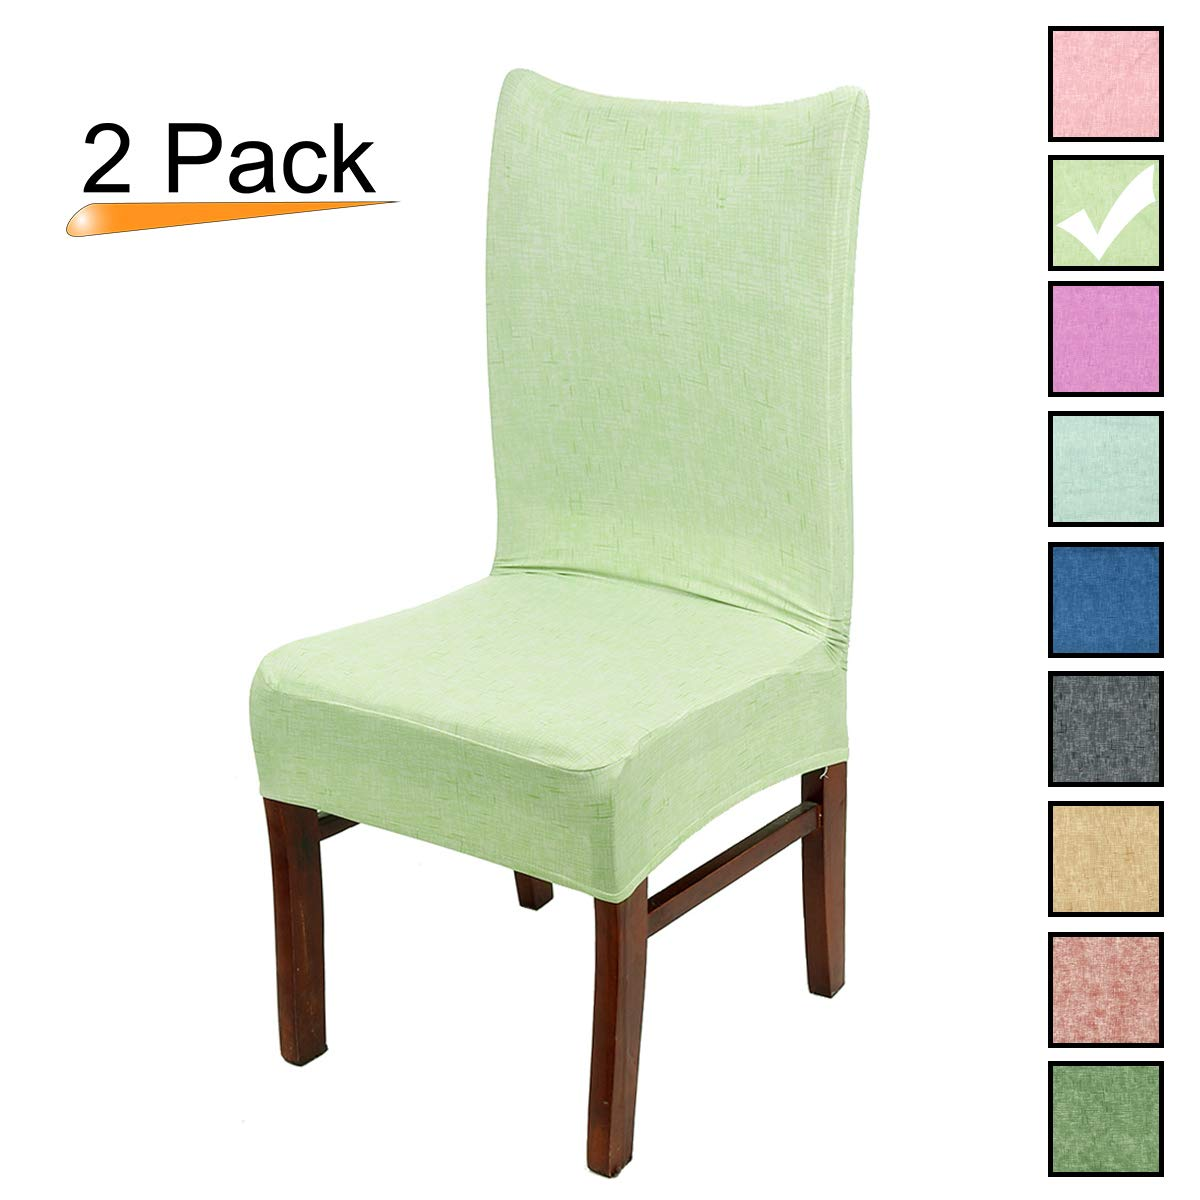 Stretch Dining Room Chair Covers Soft Spandex Seat Protector Removable Slipcover for Hotel Wedding Party Set of 2, Aqua Blue Colorxy